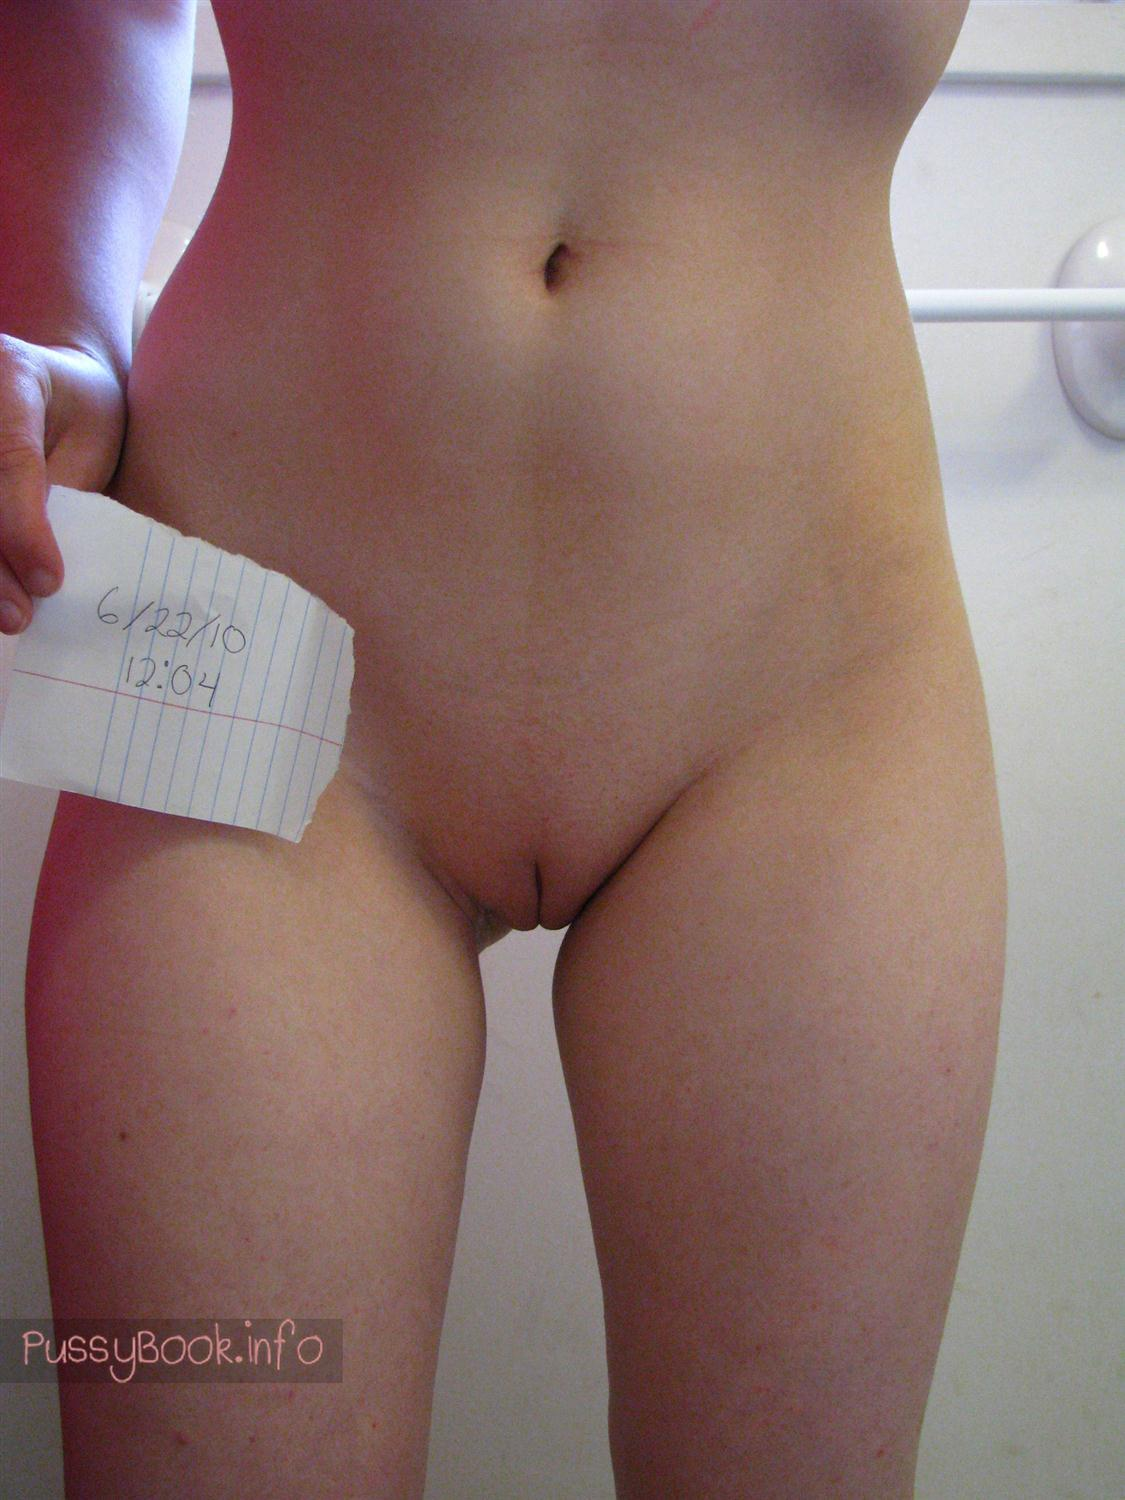 Beautiful amateur pussy much prompt